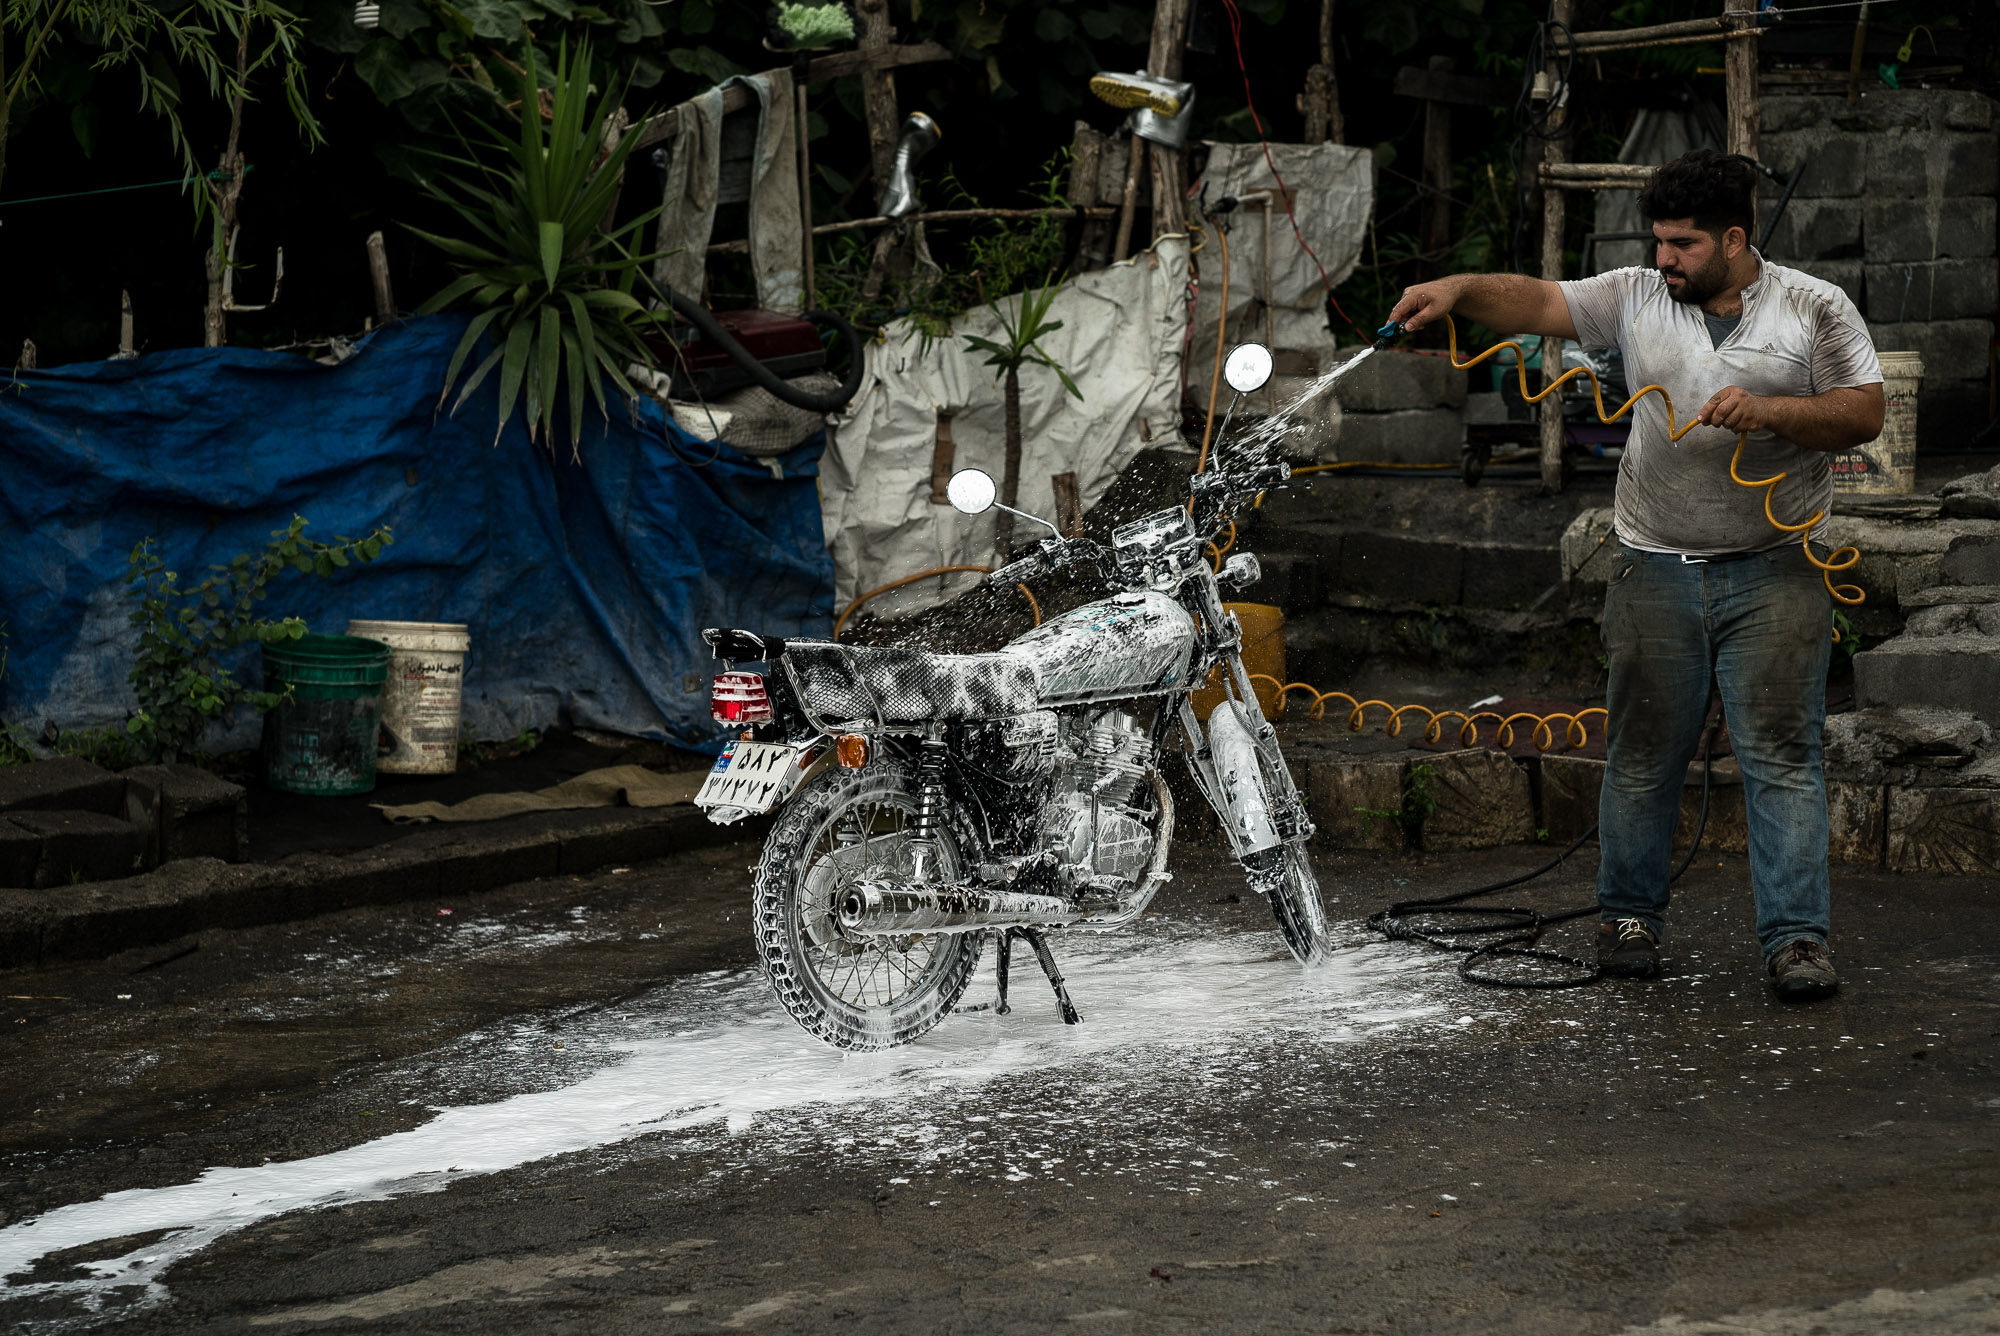 cleaning a motorcycle